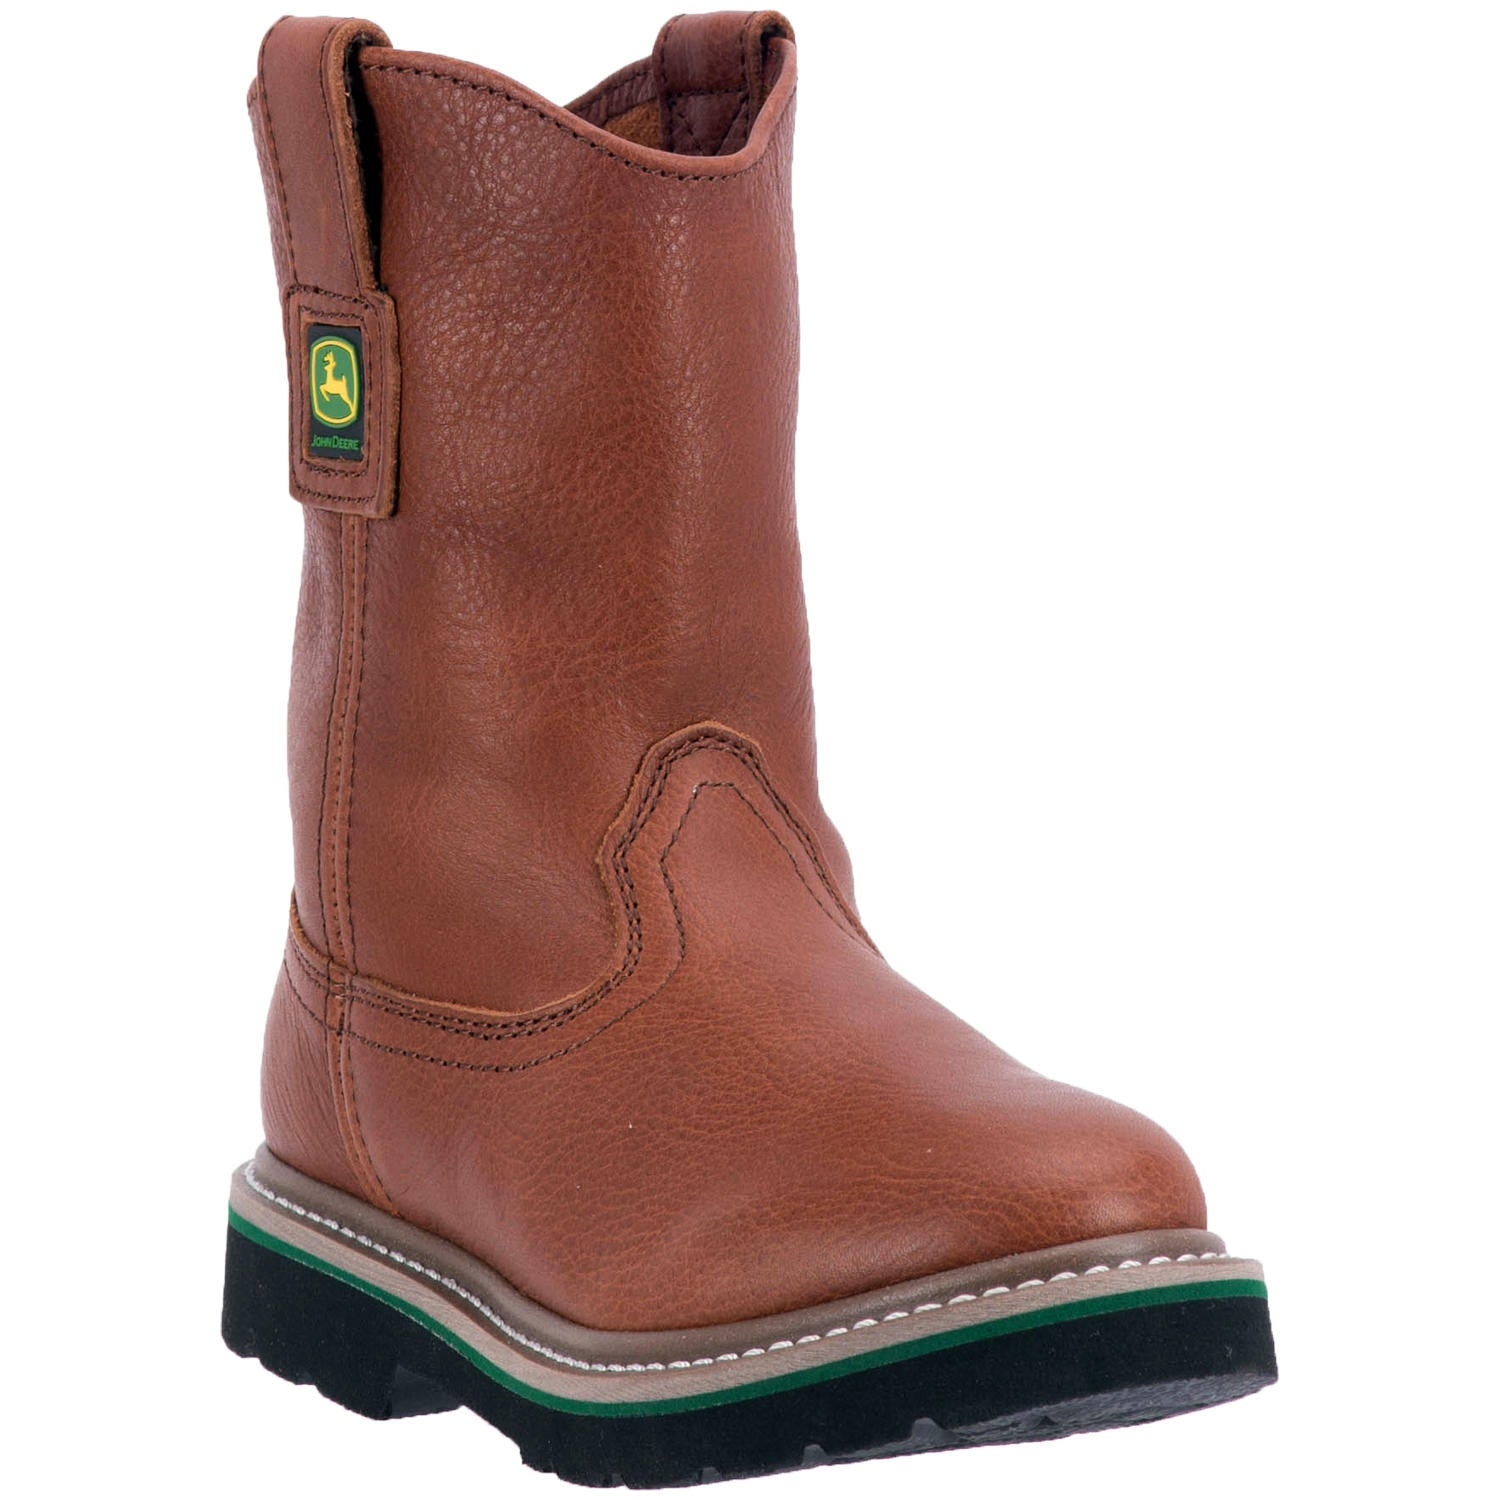 JOHN DEERE YOUTH'S  LEATHER JOHNNY POPPER YOUTH WALNUT